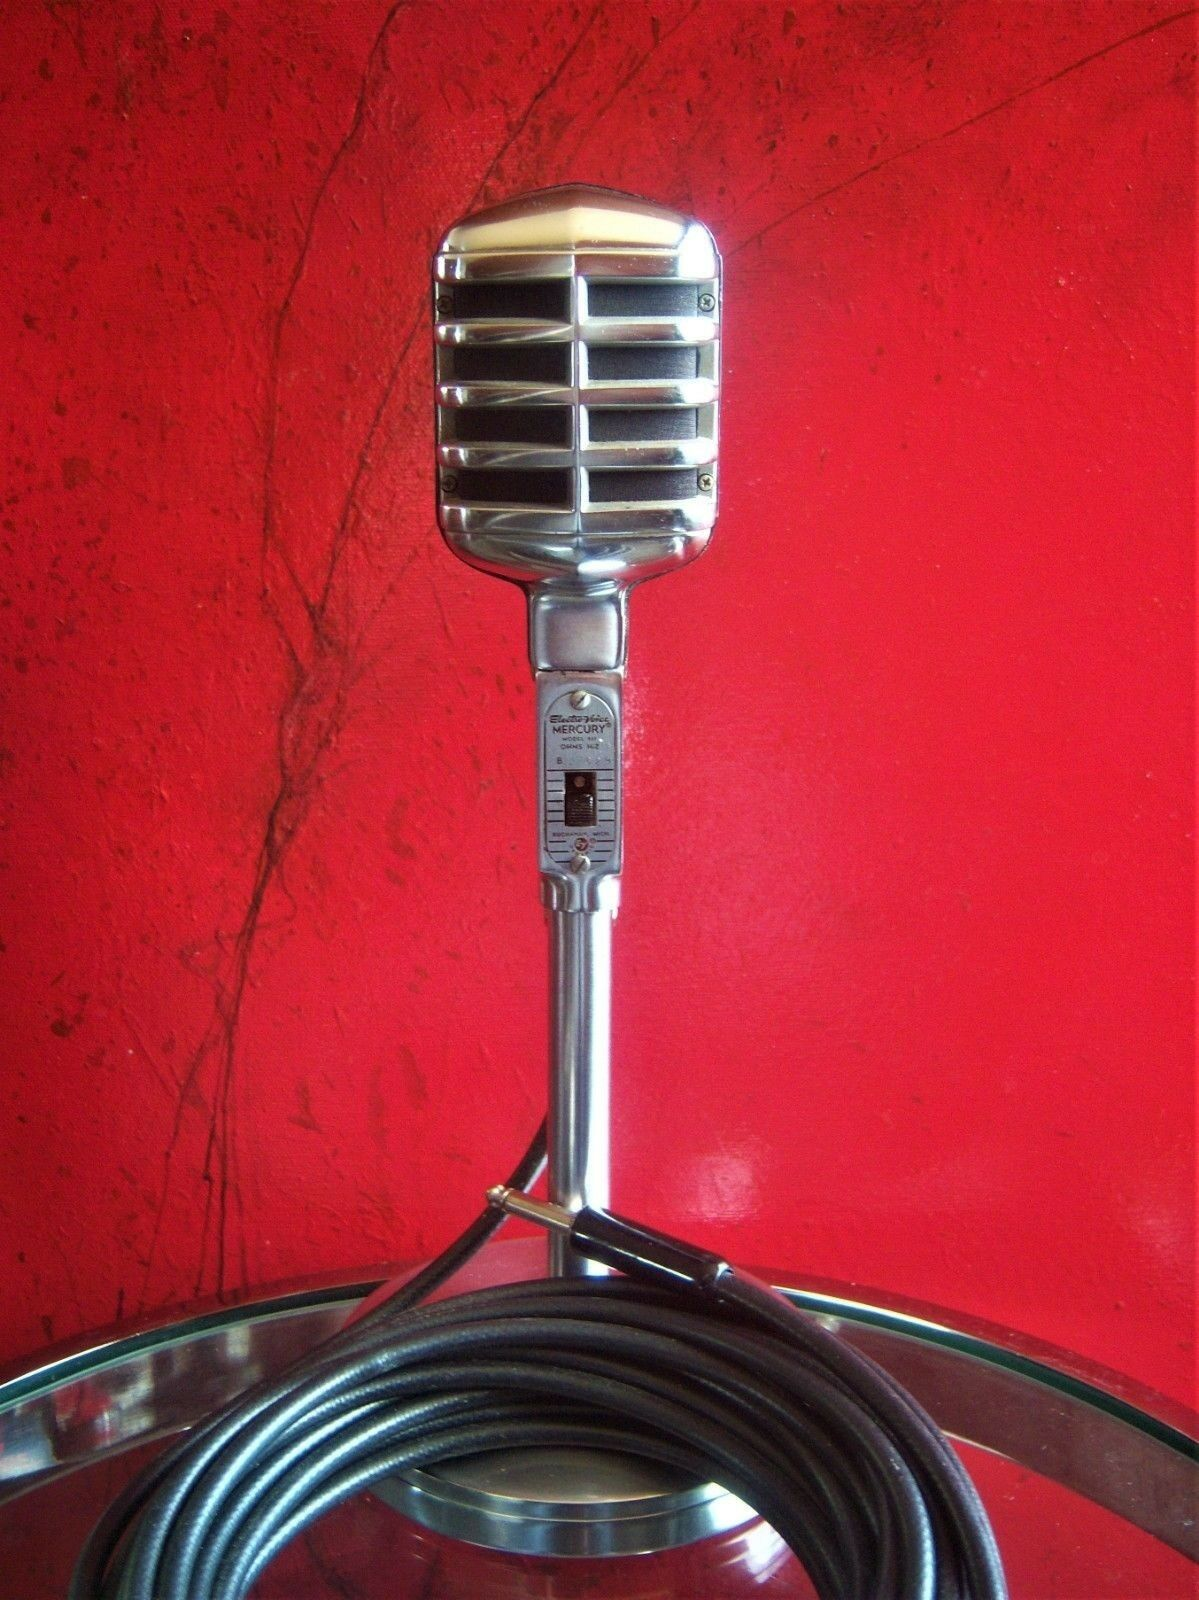 Vintage 1950's Electro Voice 611 dynamic microphone old w cable WORKS 911 915